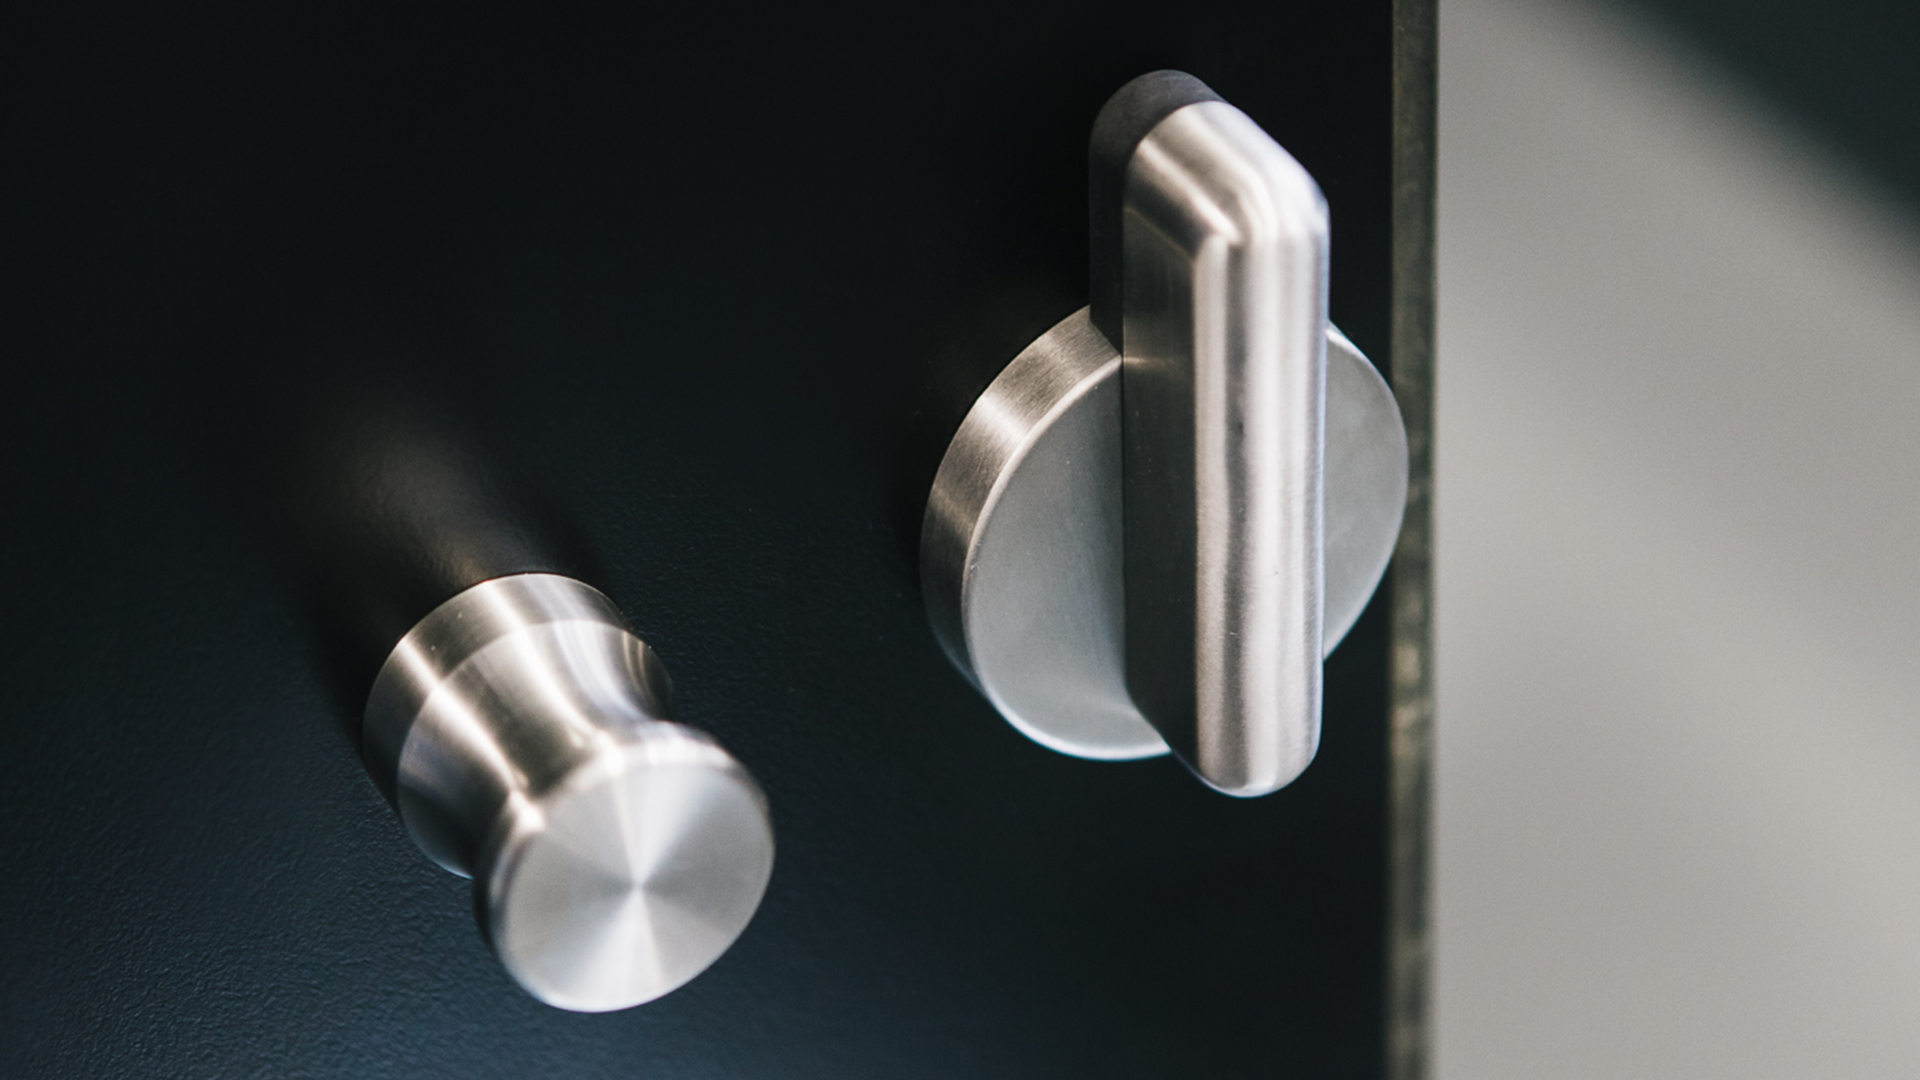 Stainless steel partition hardware